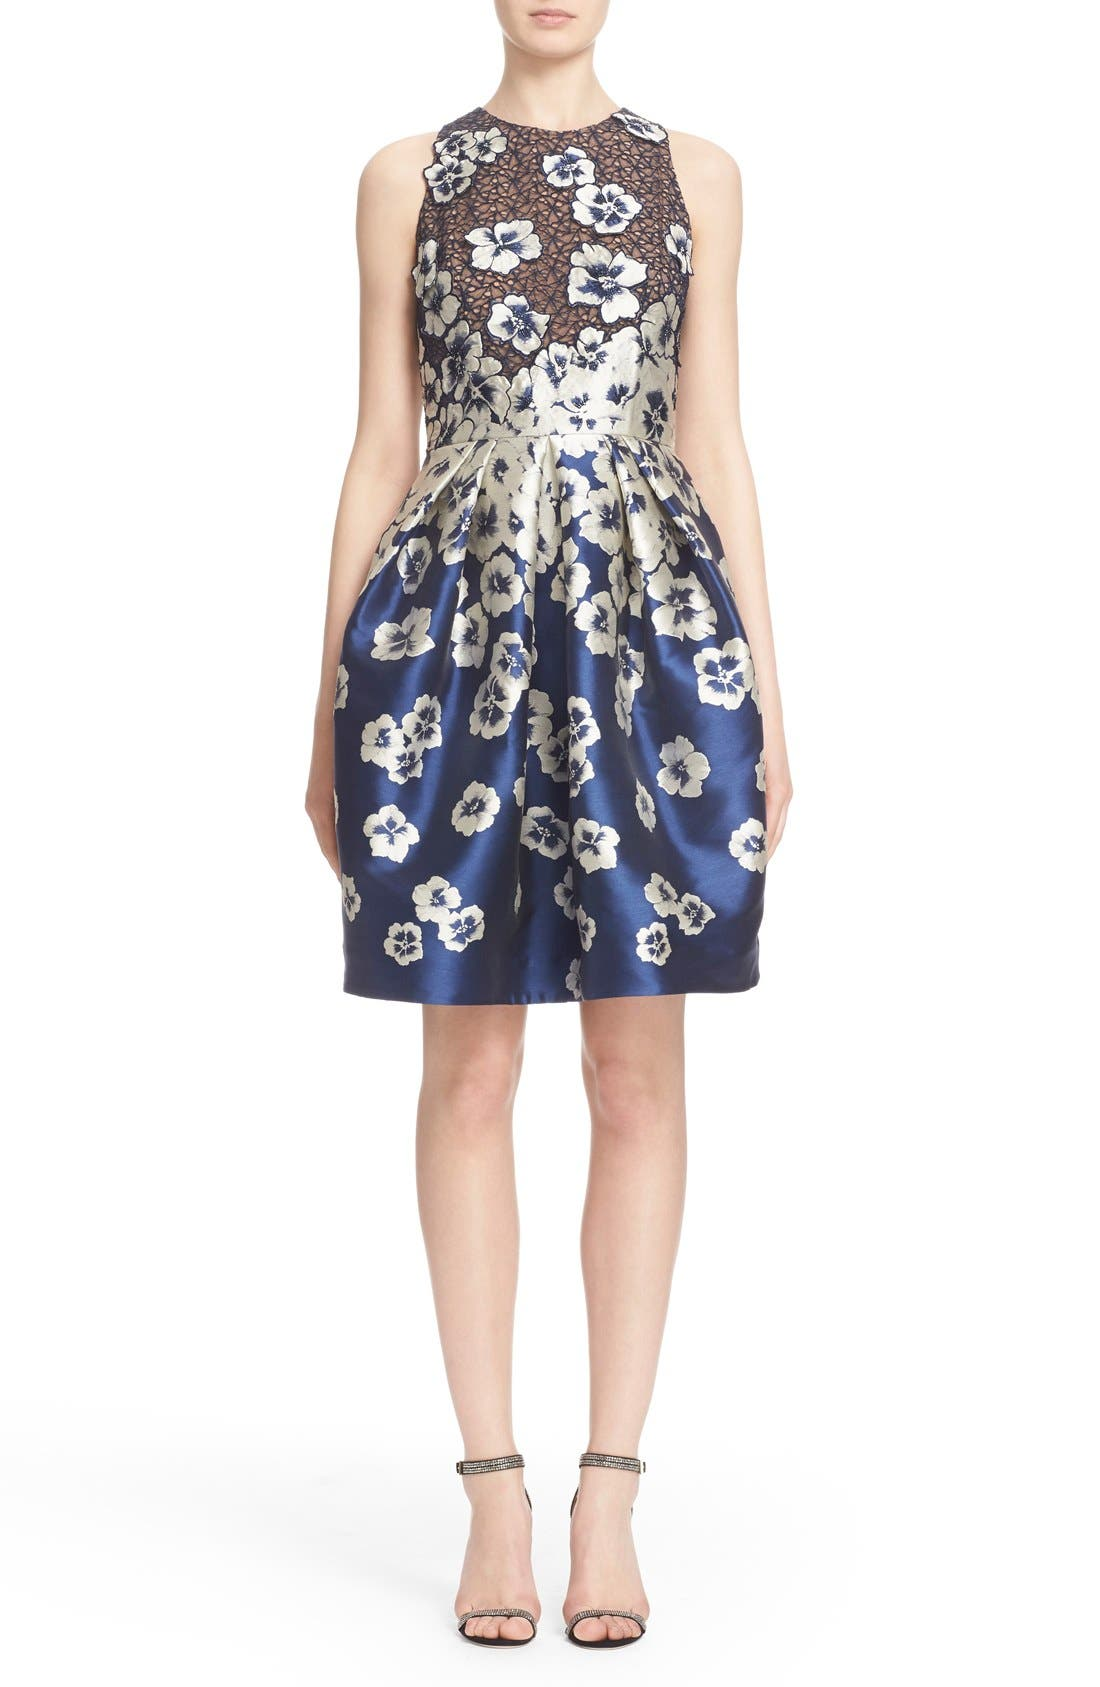 Alternate Image 1 Selected - Carmen Marc Valvo Couture Floral Appliqué Cutaway Cocktail Dress